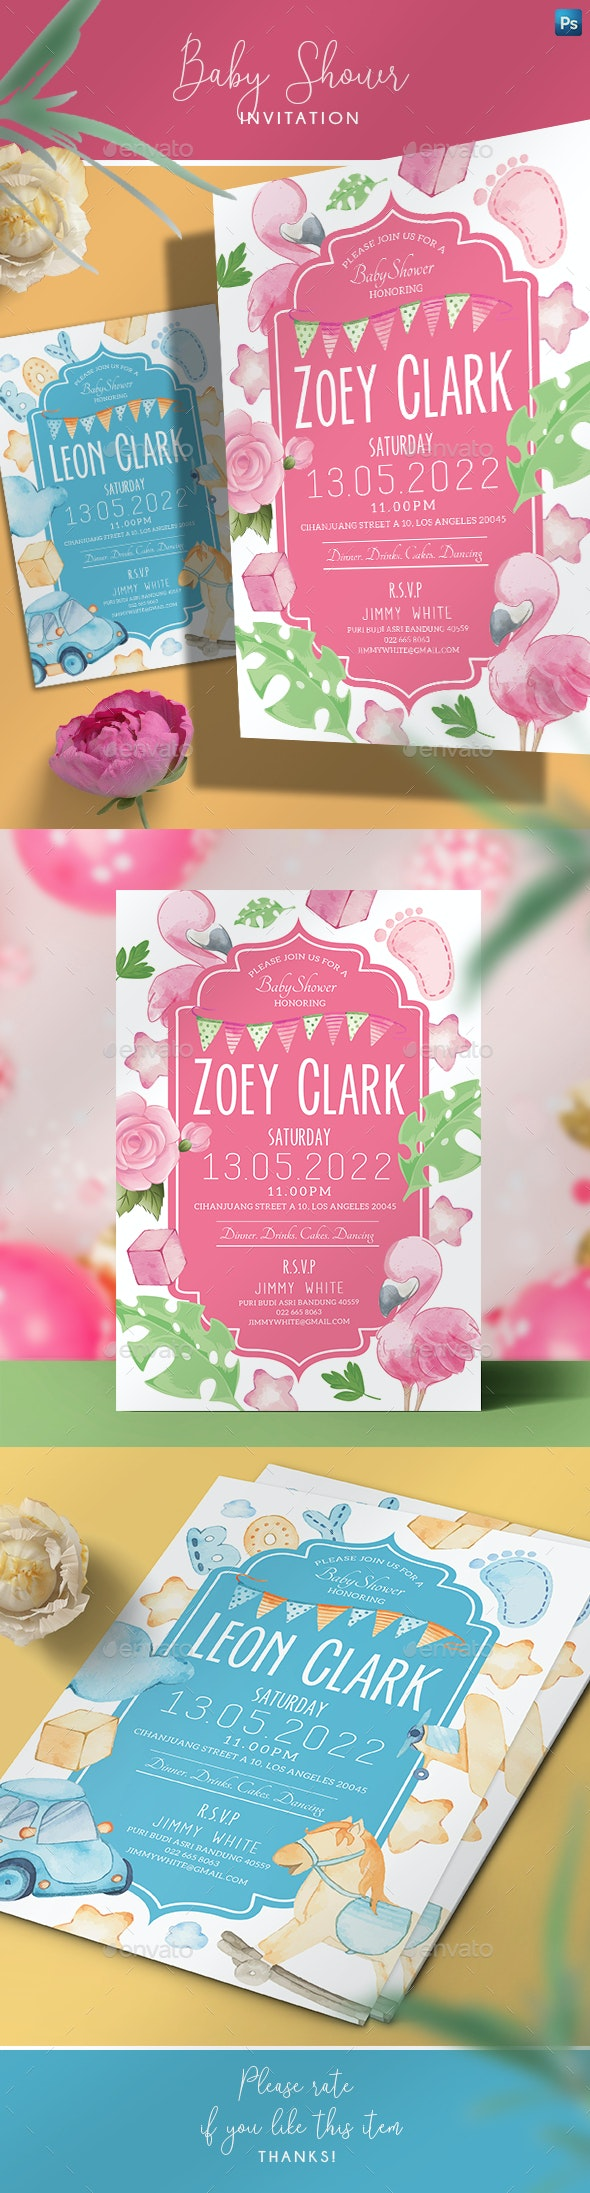 Boy and Girl Baby Shower Invitation - Family Cards & Invites